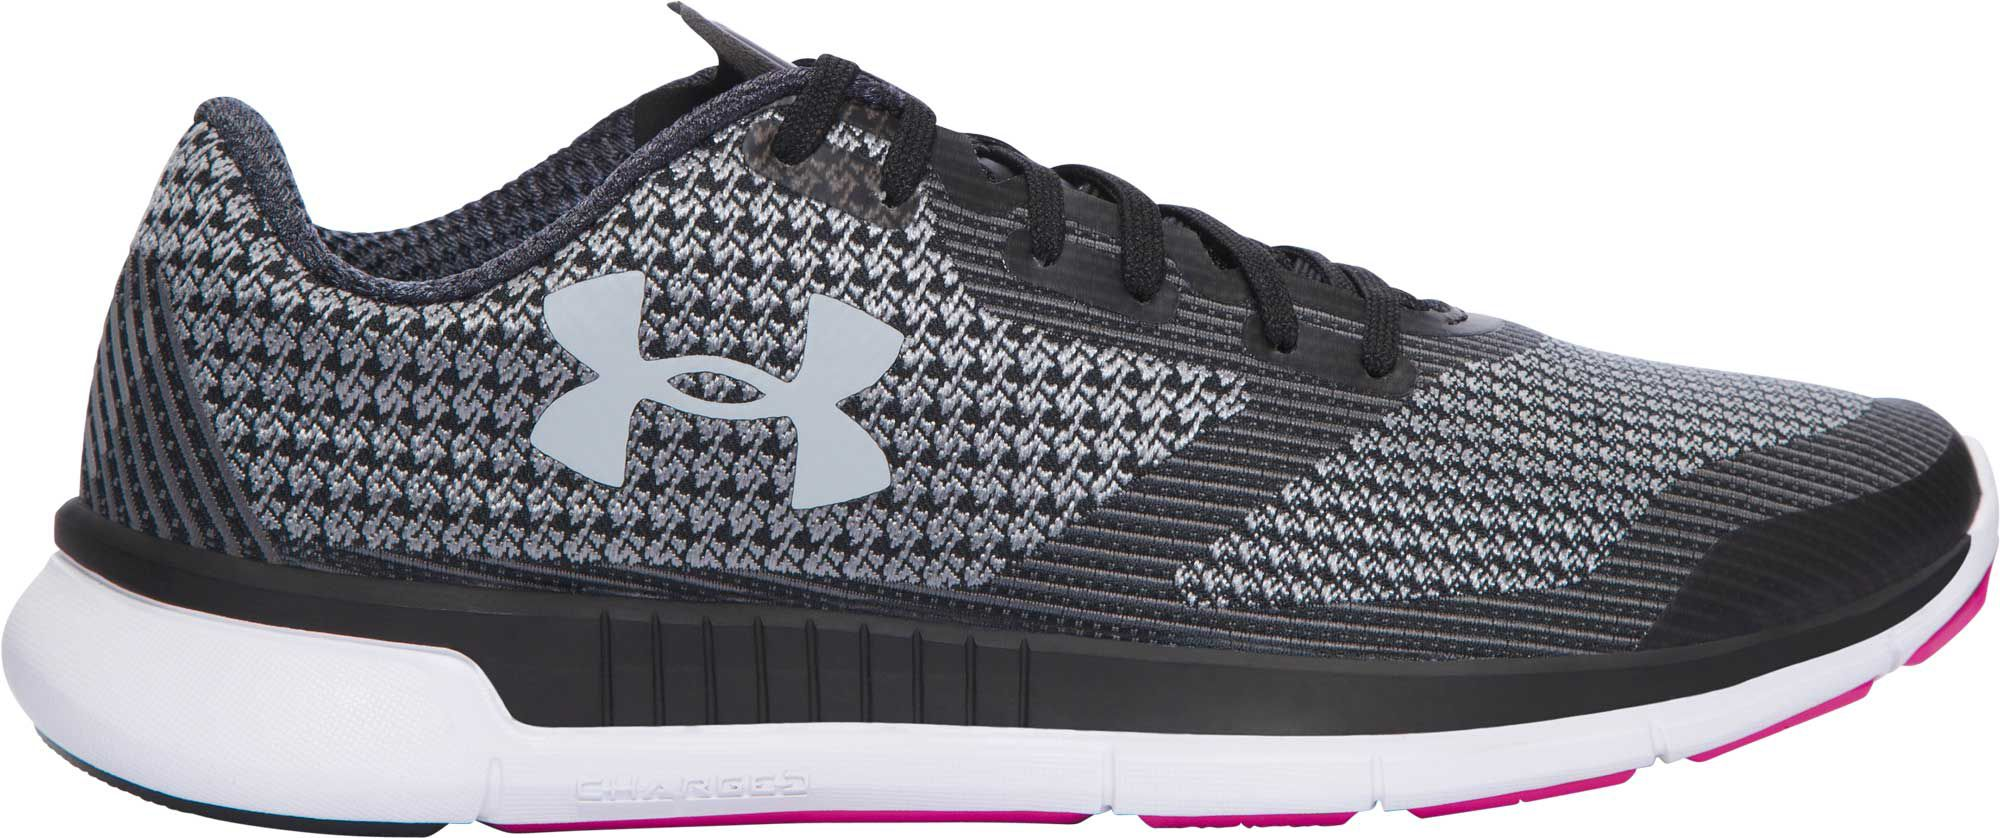 under armour running shoes black and white. under armour women\u0027s charged lightning running shoes black and white